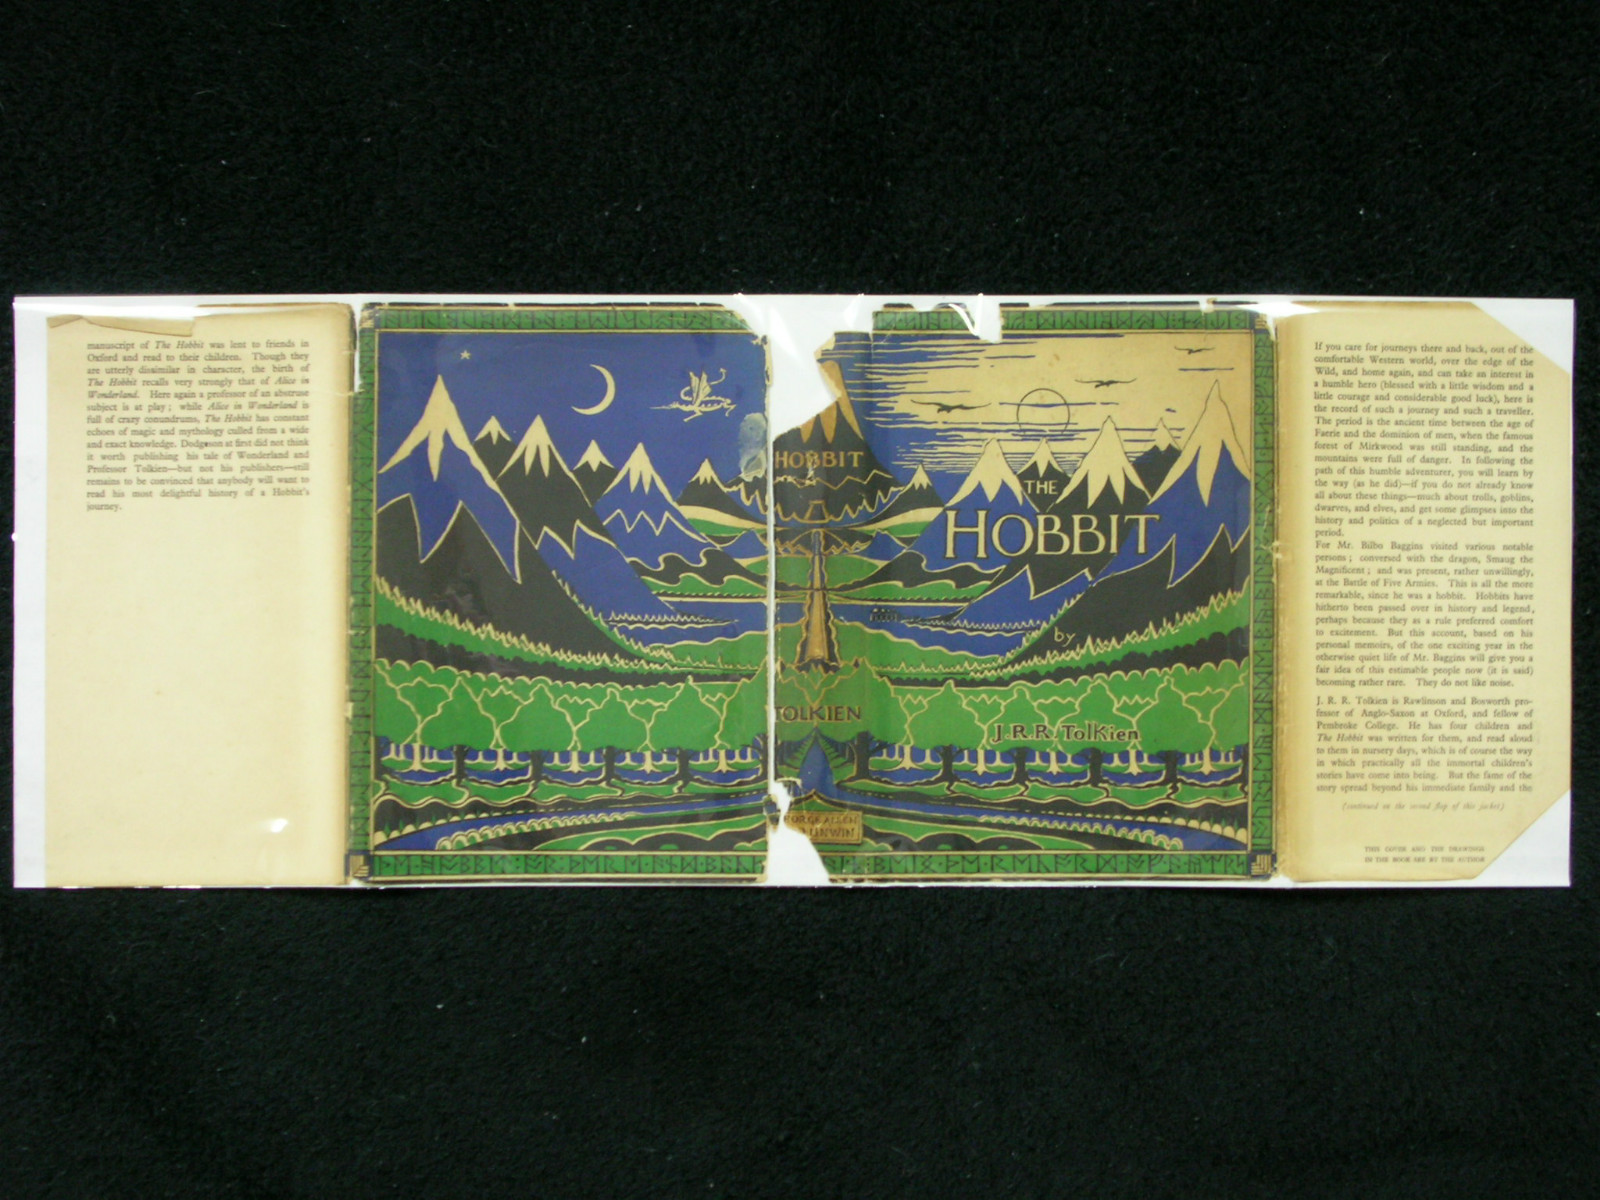 The Hobbit 1937 UK 1st Impression